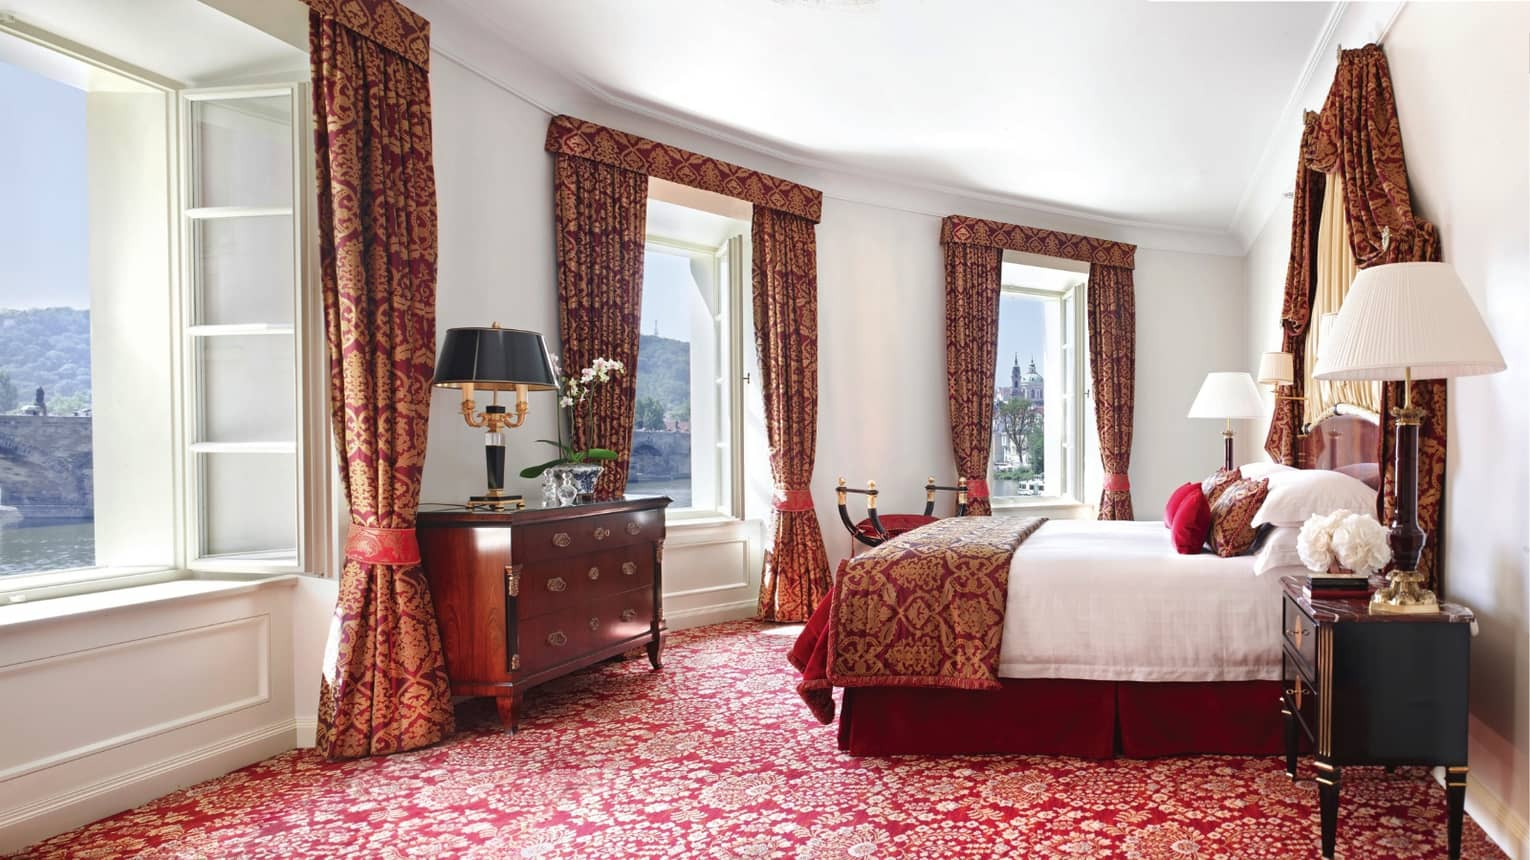 Presidential Suite with bright windows along curved wall, Baroque-inspired red-and-gold carpet, curtains